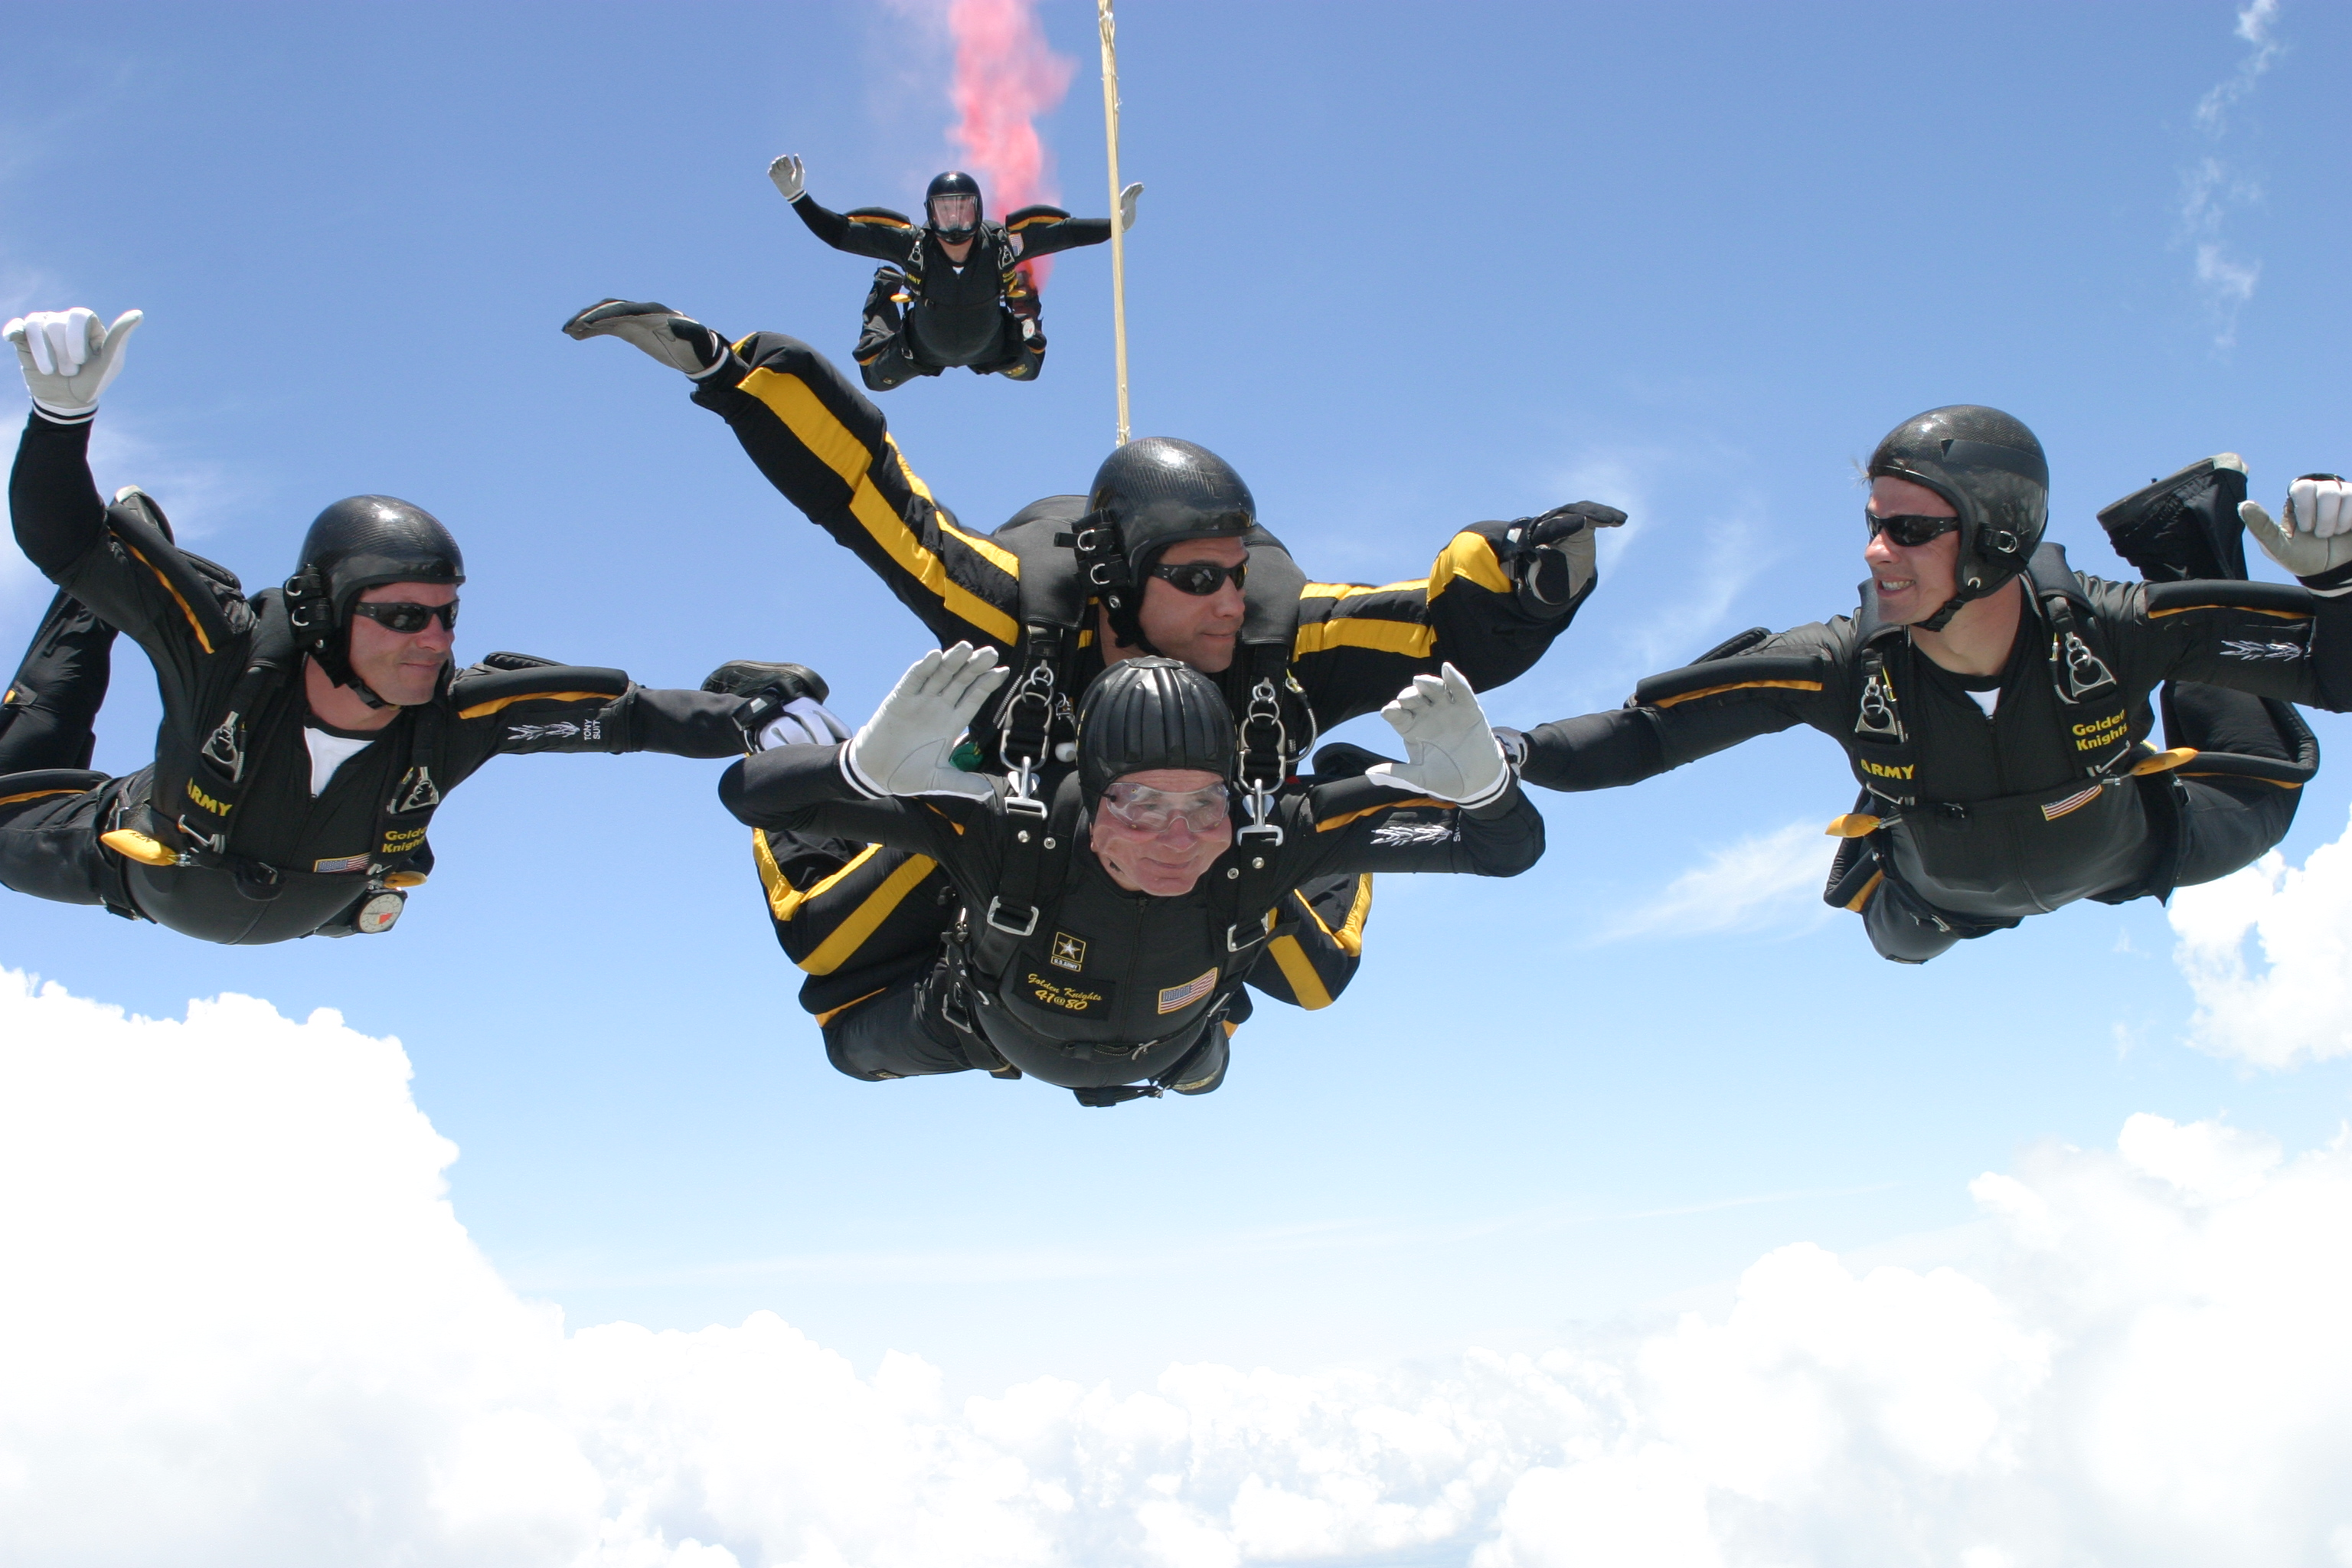 George H.W. Bush celebrates his 80th birthday with a tandem parachute jump over Texas A&M University with the U.S. Army Golden Knights parachute team. on June 13, 2004 in College Station, Texas.